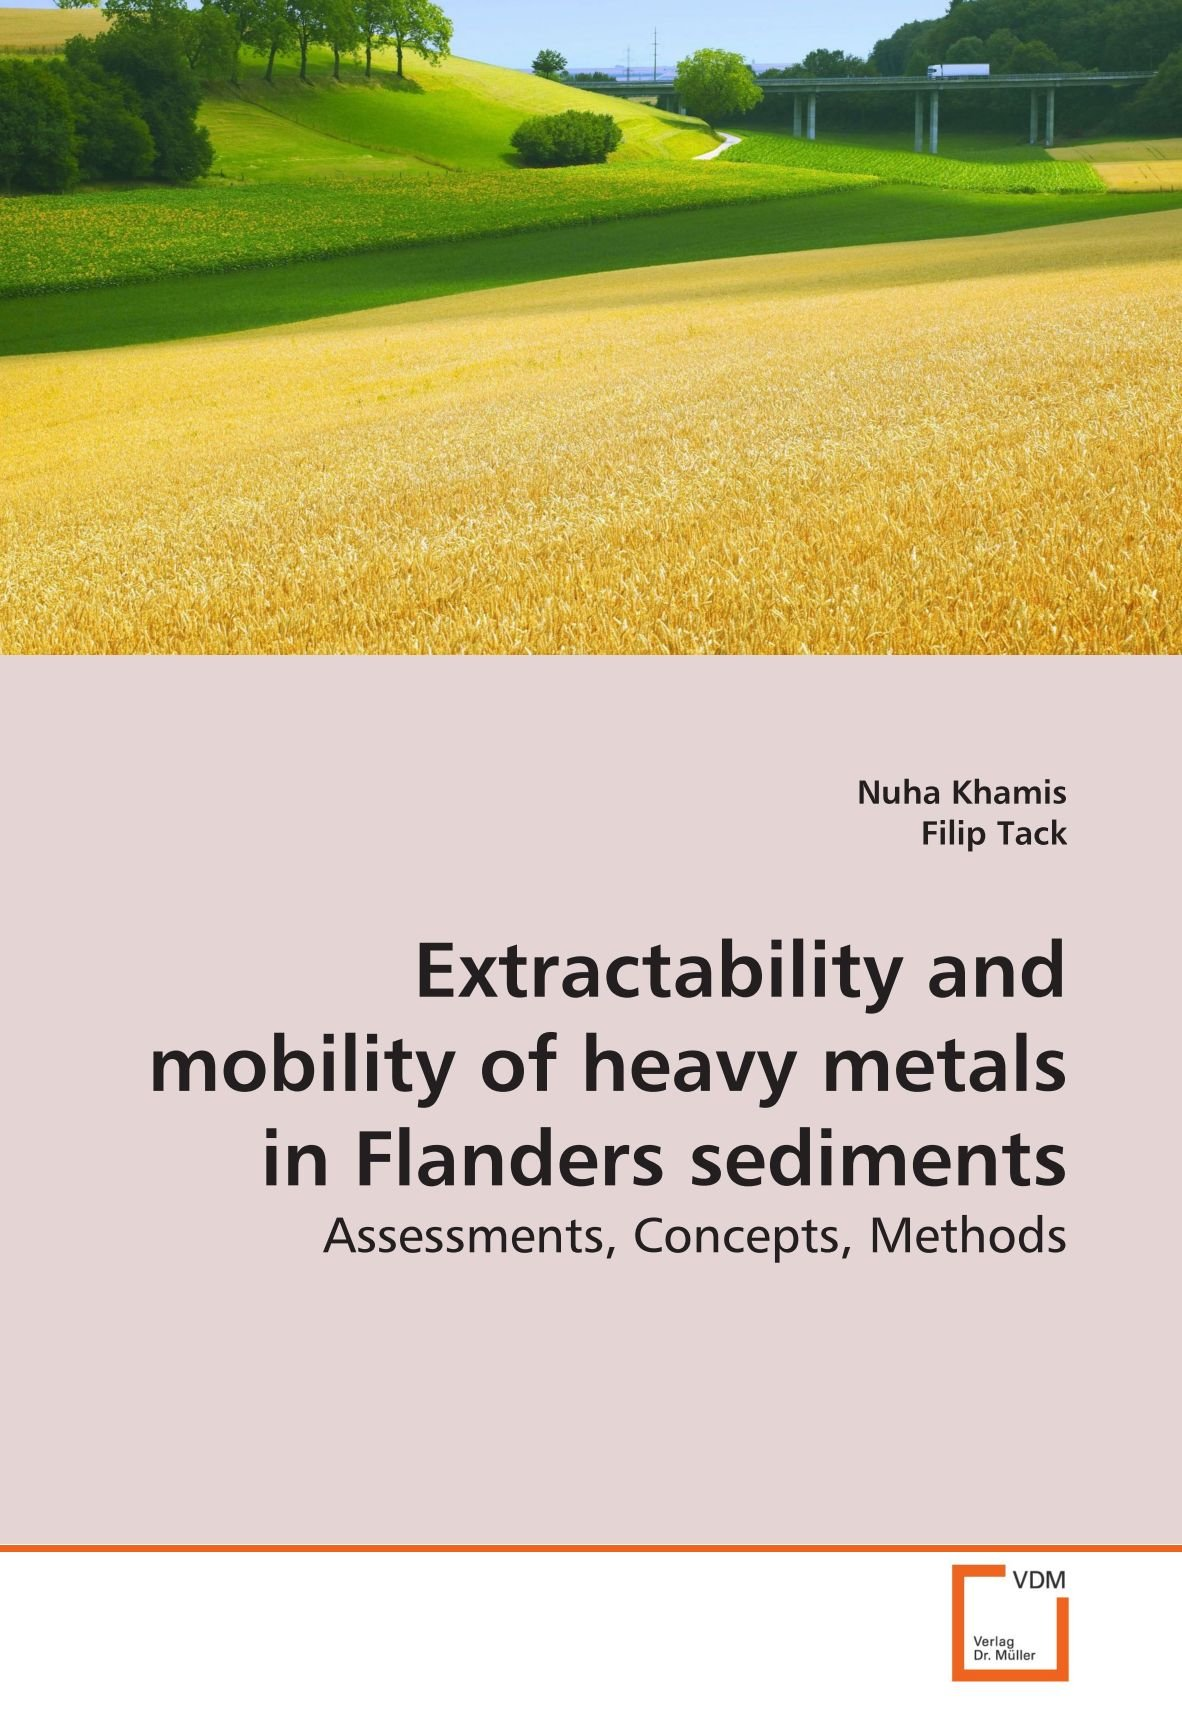 Download Extractability and mobility of heavy metals in Flanders sediments: Assessments, Concepts, Methods ebook